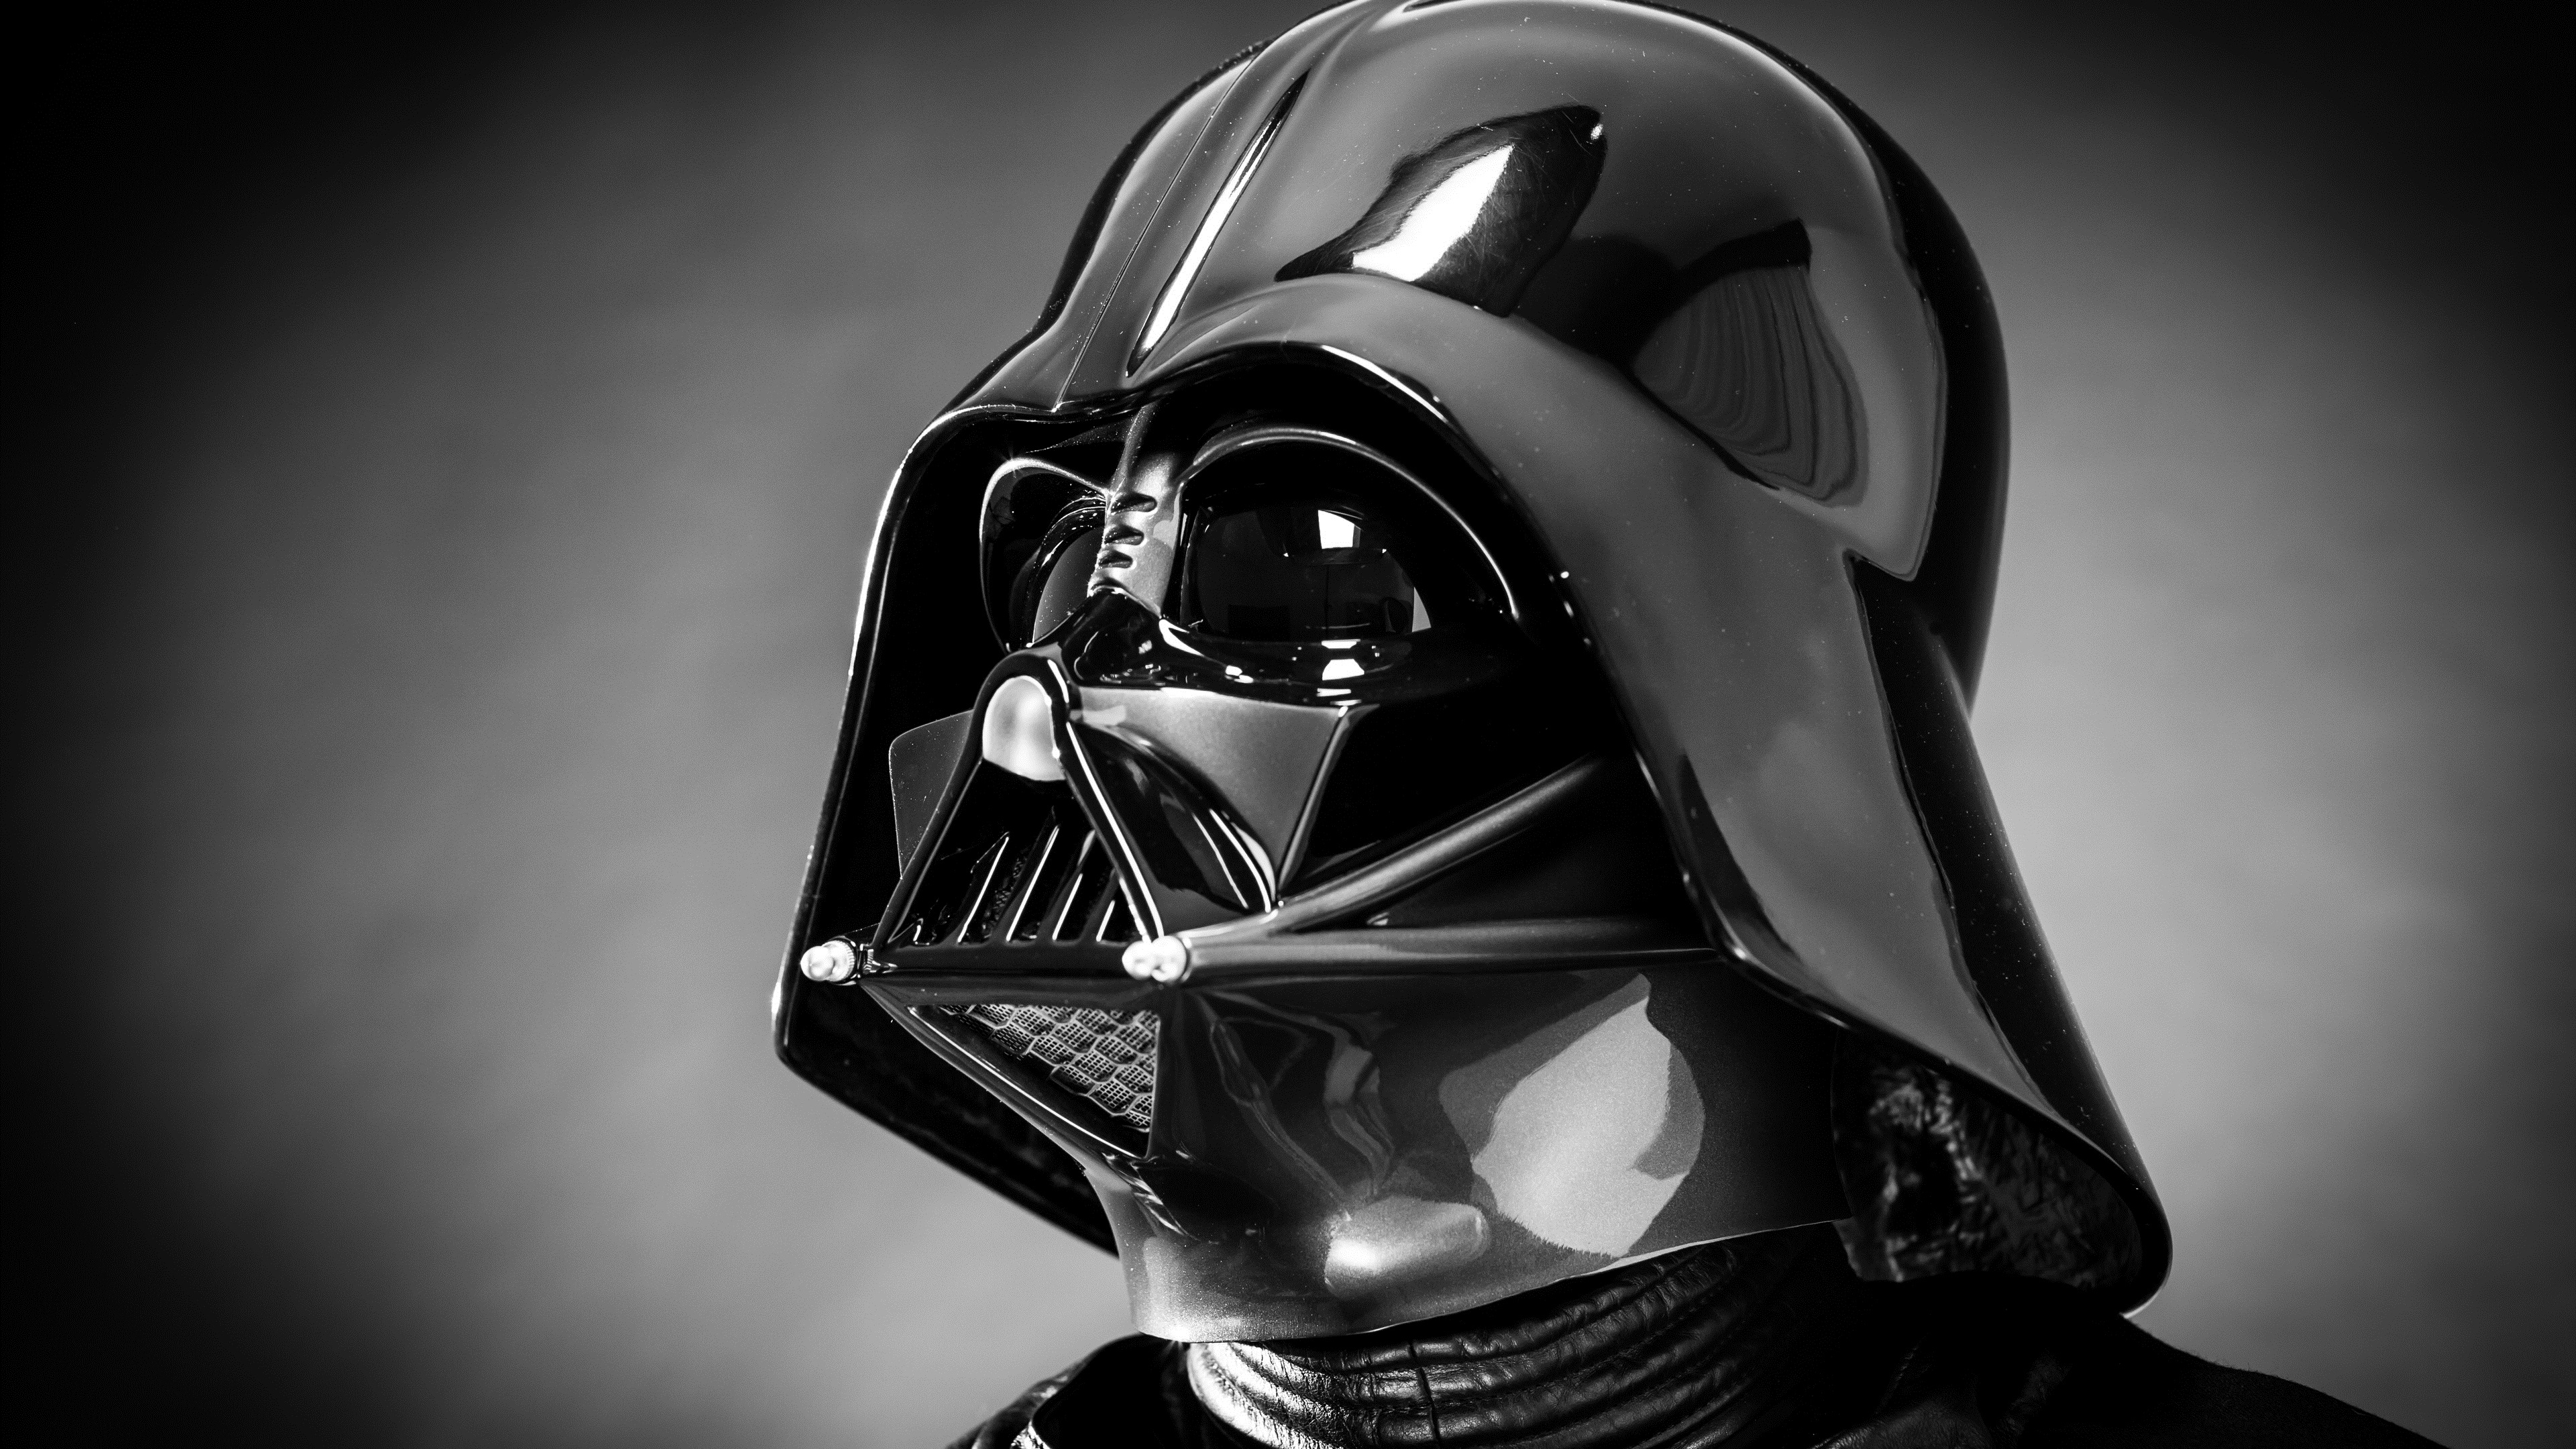 Fonds D Ecran Star Wars Dark Vador Casque 3840x2160 Uhd 4k Image